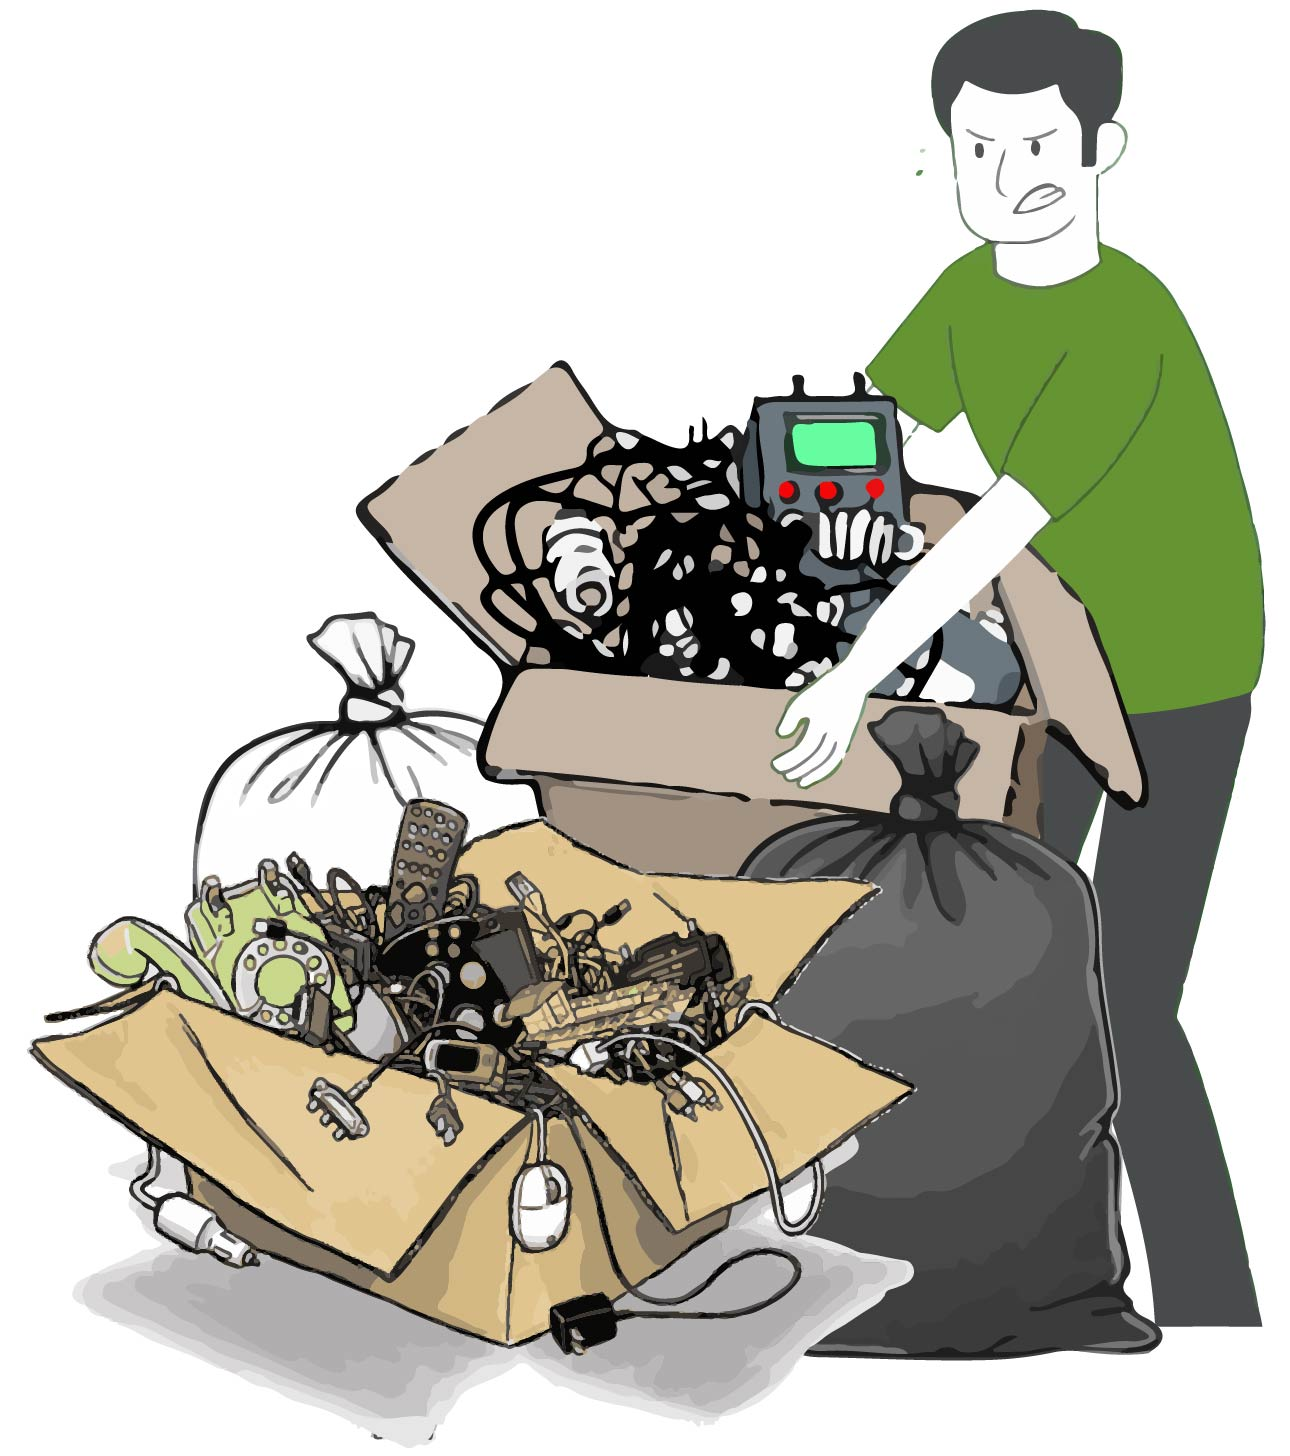 Affordable Junk Removal Services in Naugatuck, CT